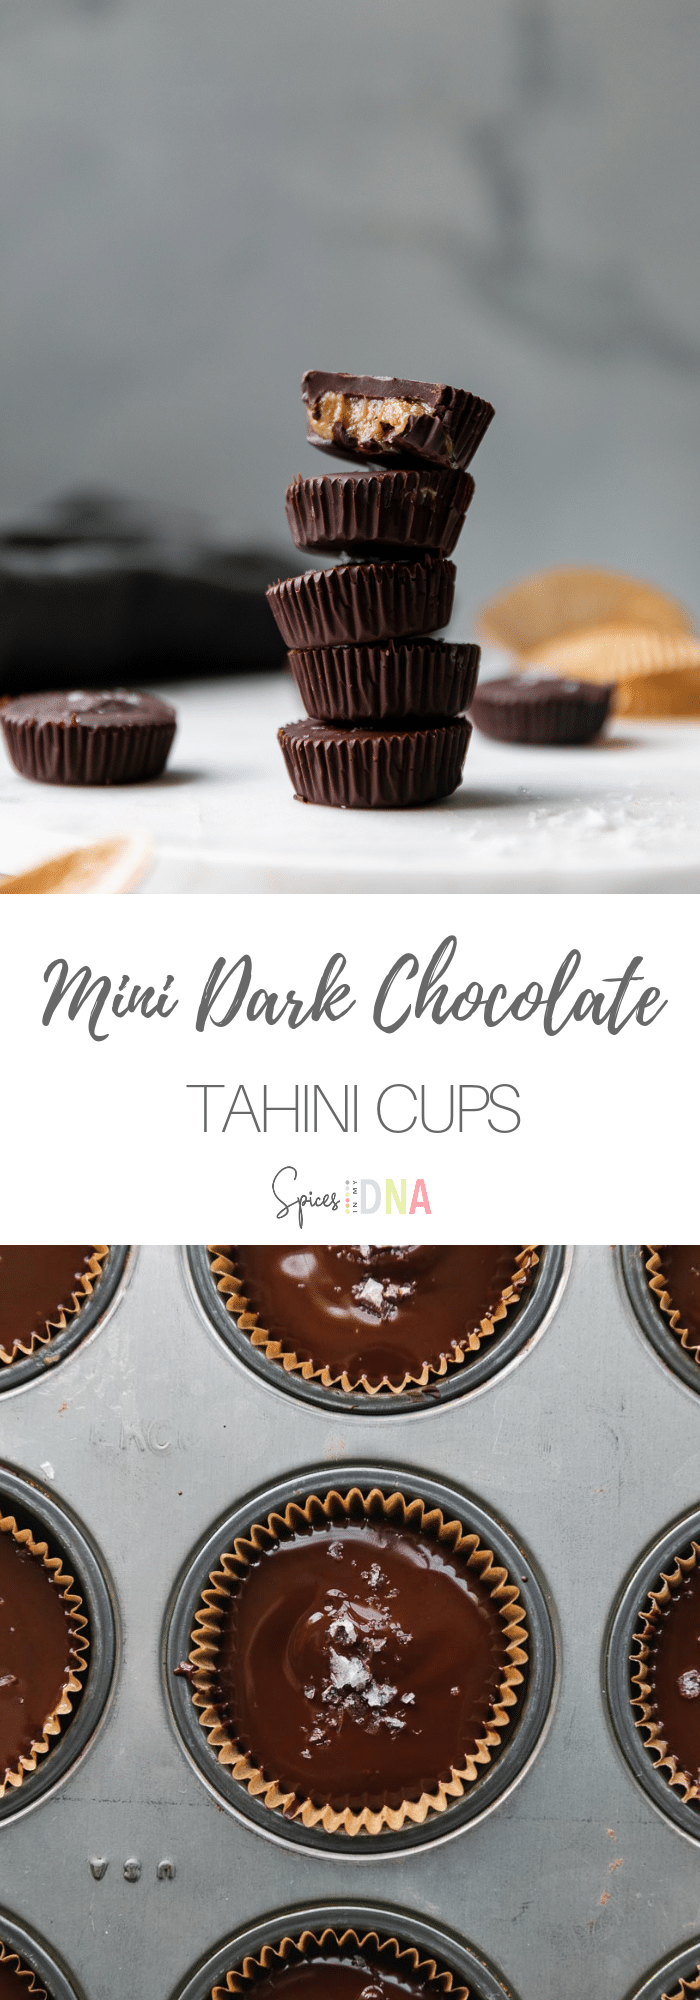 These Mini Dark Chocolate Tahini Cups are the best 6 ingredient treat to keep on hand for when that sweet craving strikes! They're made with dark chocolate, tahini, honey, a little bit of powdered sugar, vanilla extract, and salt, so they're on the healthier side! The combination of flavors is absolutely delicious, and they make for a great gift too! #darkchocolate #tahini #tahinicups #healthydessert #6ingredient